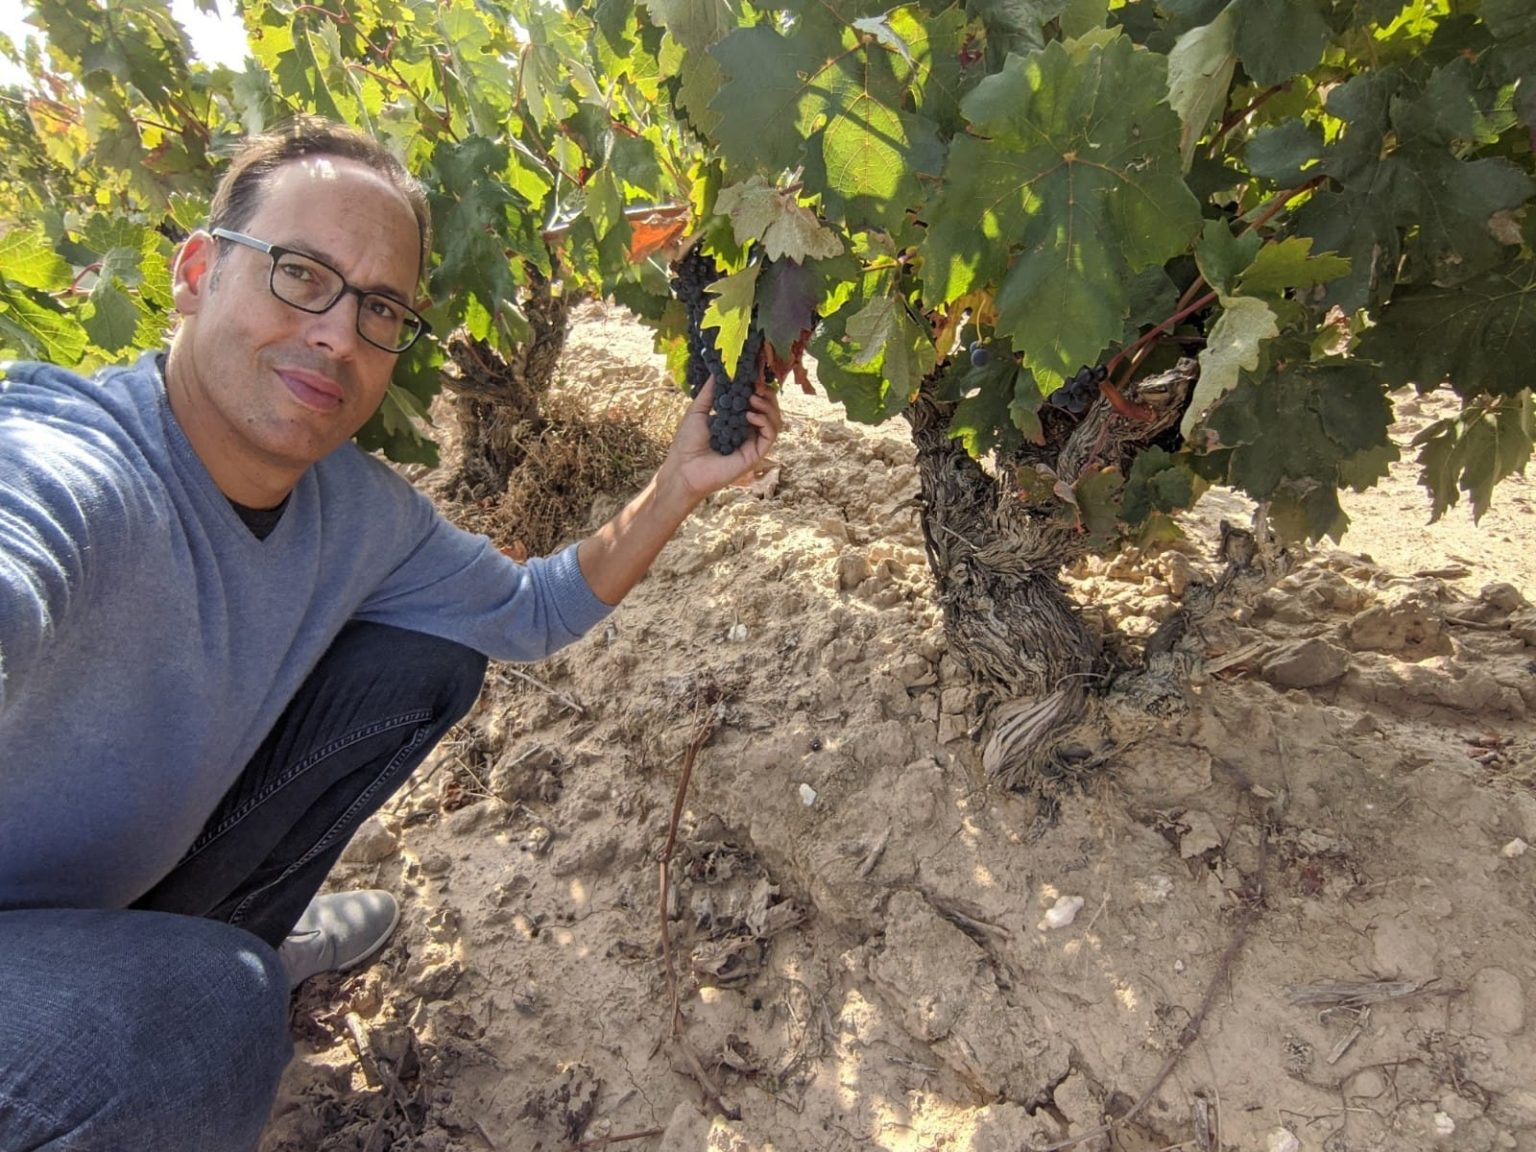 Although David came to the US to learn English and play sports, his passion has always been wine and so he set out to find out how the wine business worked in the US.